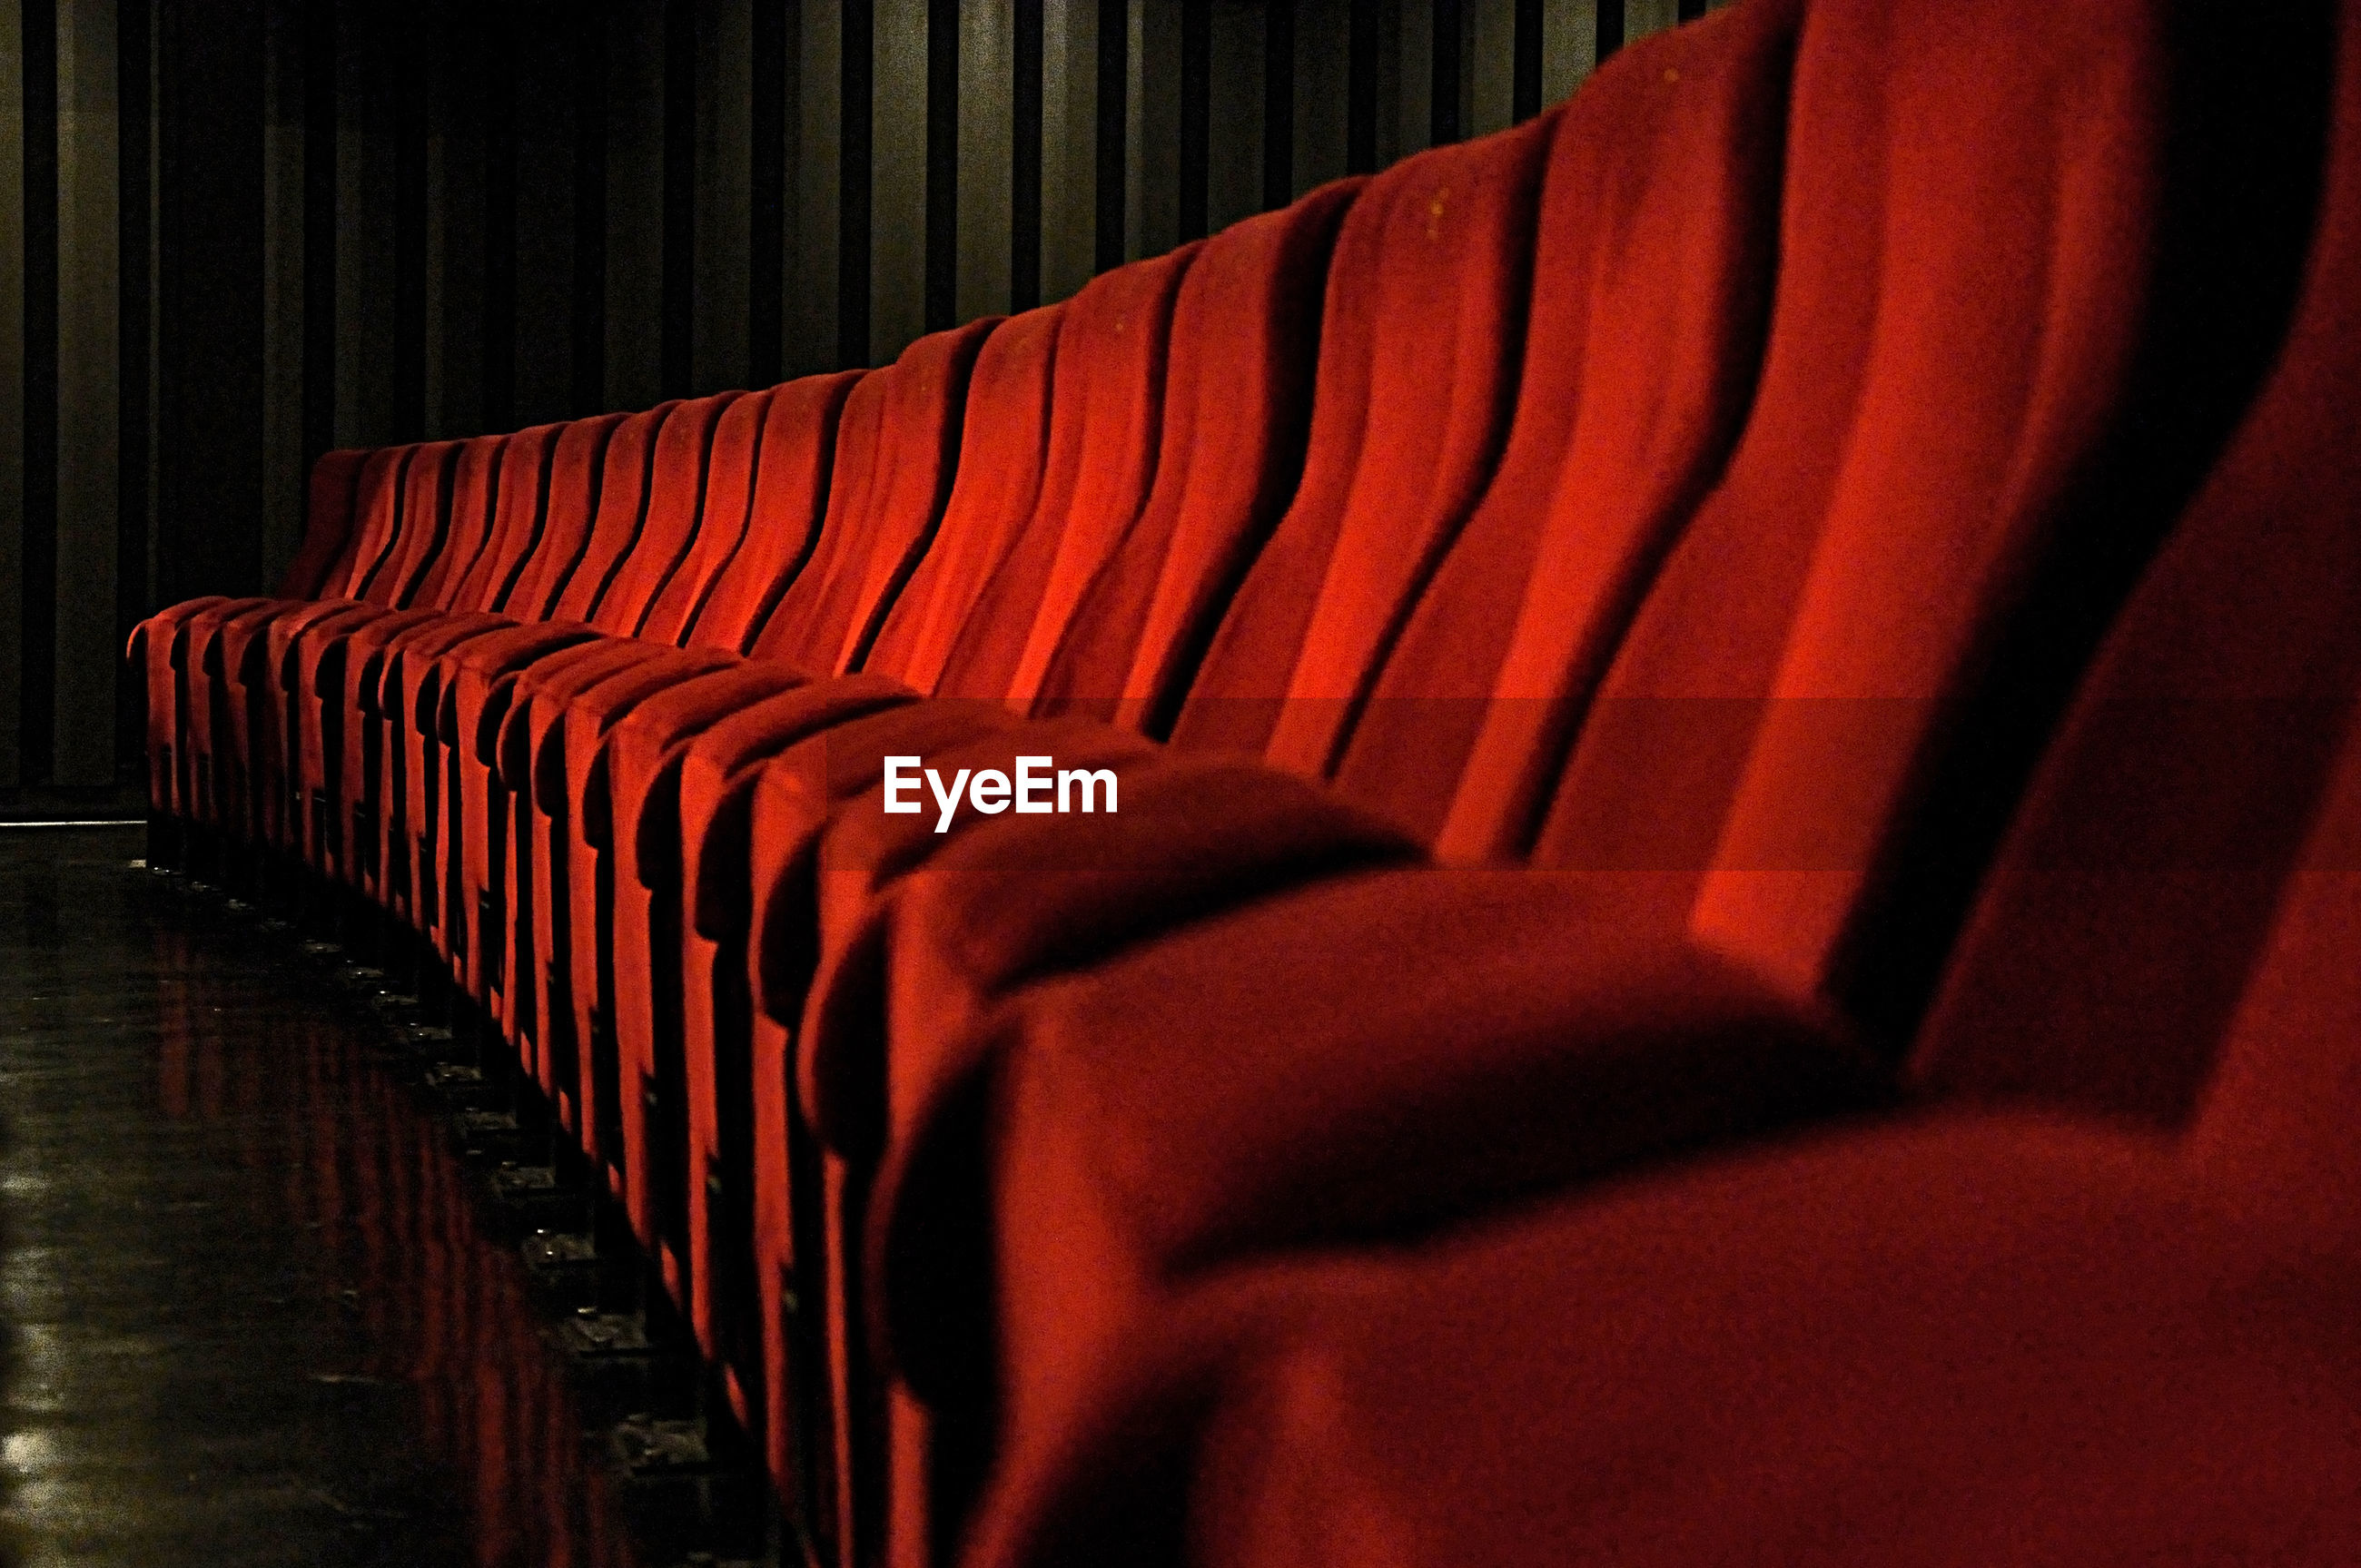 Empty seats at theater